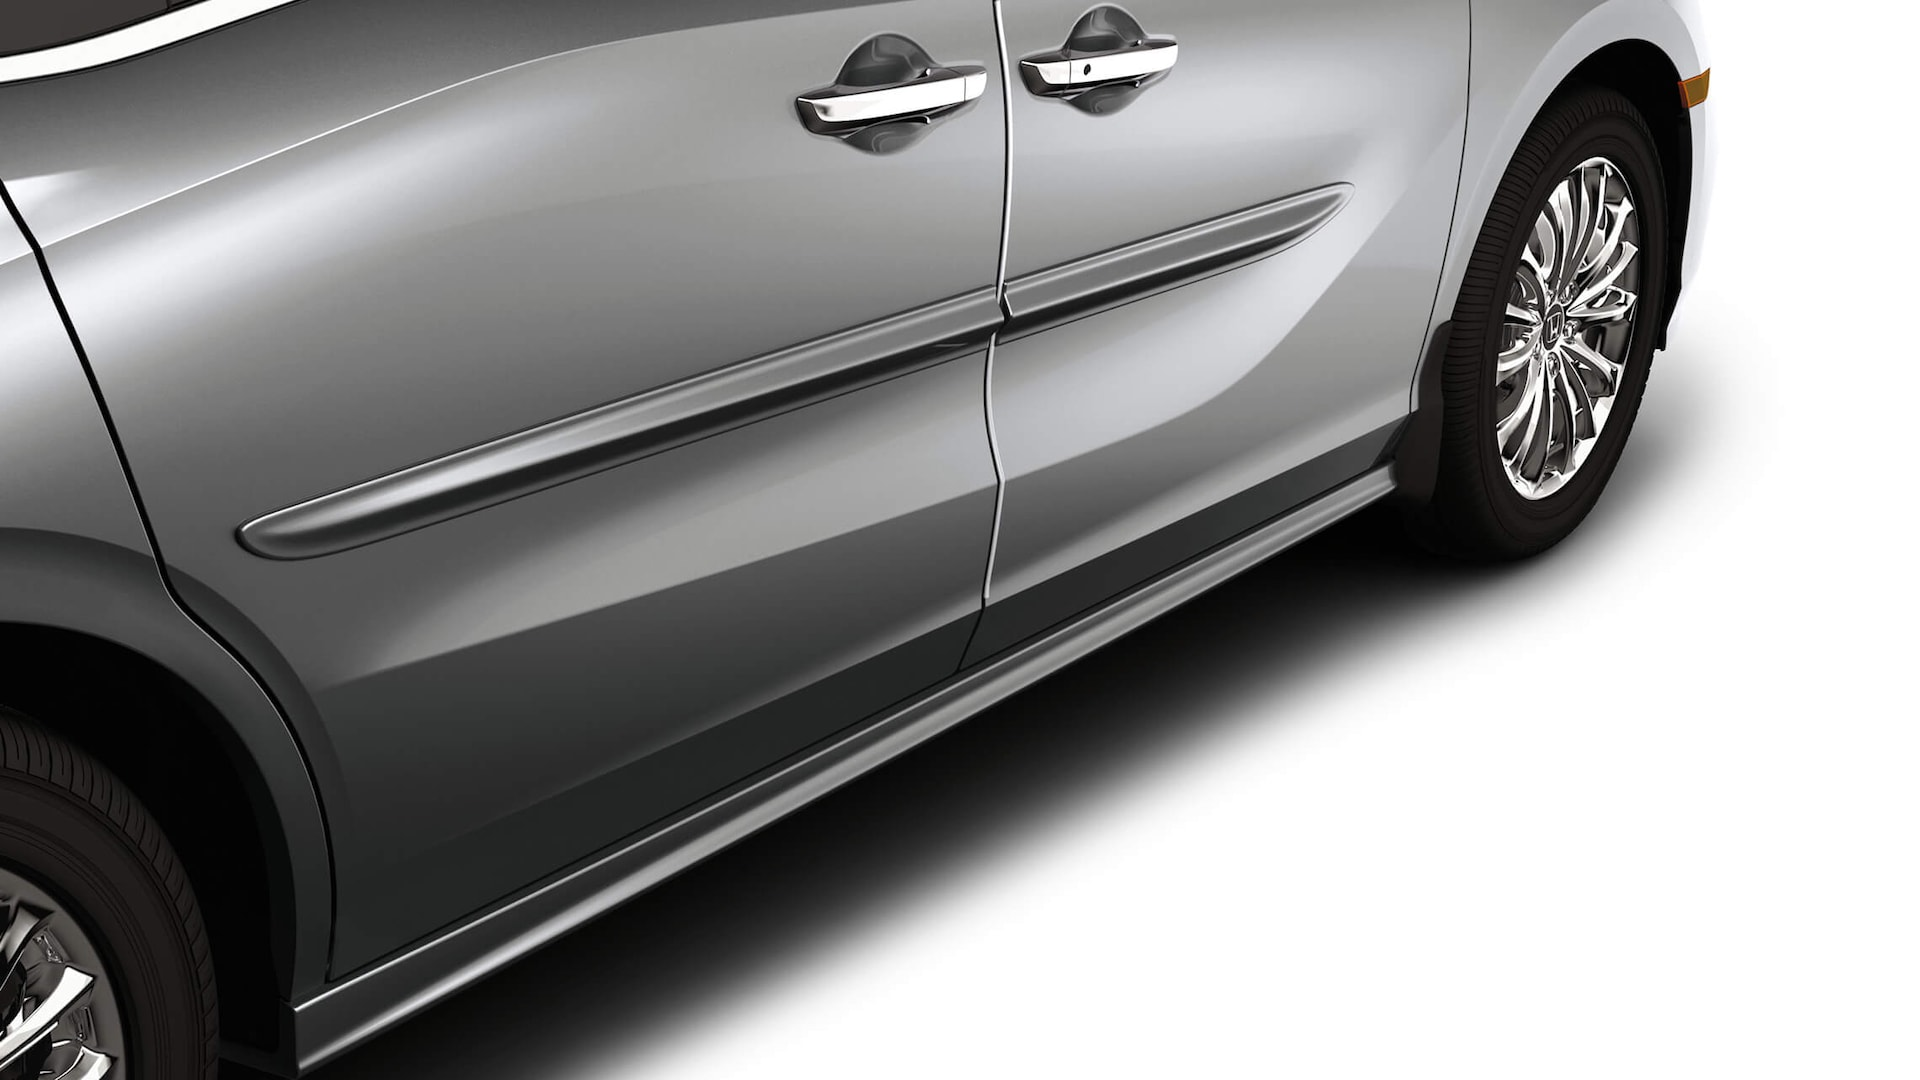 Detail of the 2022 Honda Odyssey accessory body side molding.